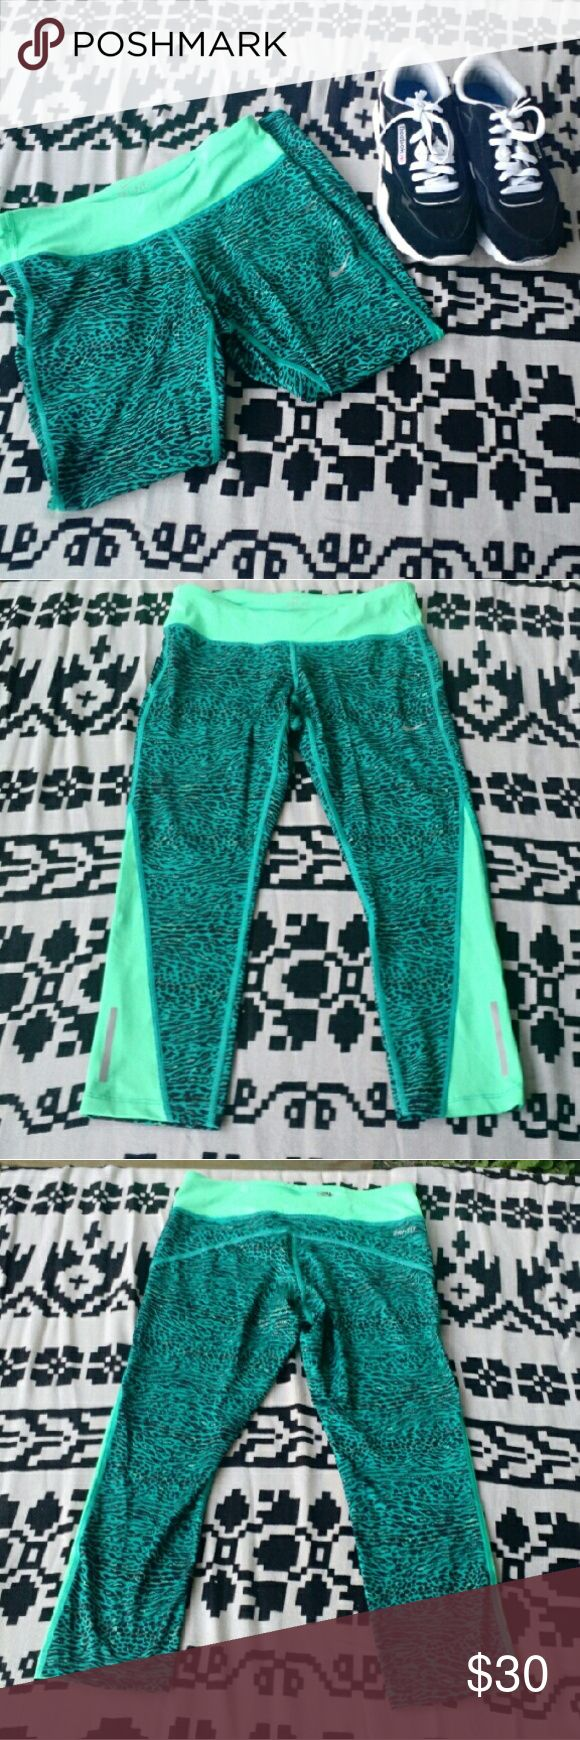 "Teal Nike Leopard Dri-Fit Capri Cute pre-owned Capri compression pants in excellent condition. No flaws. Waist measures 13"", inseam measures 21"".   Offers are always welcome!  E&T Nike Pants Capris"